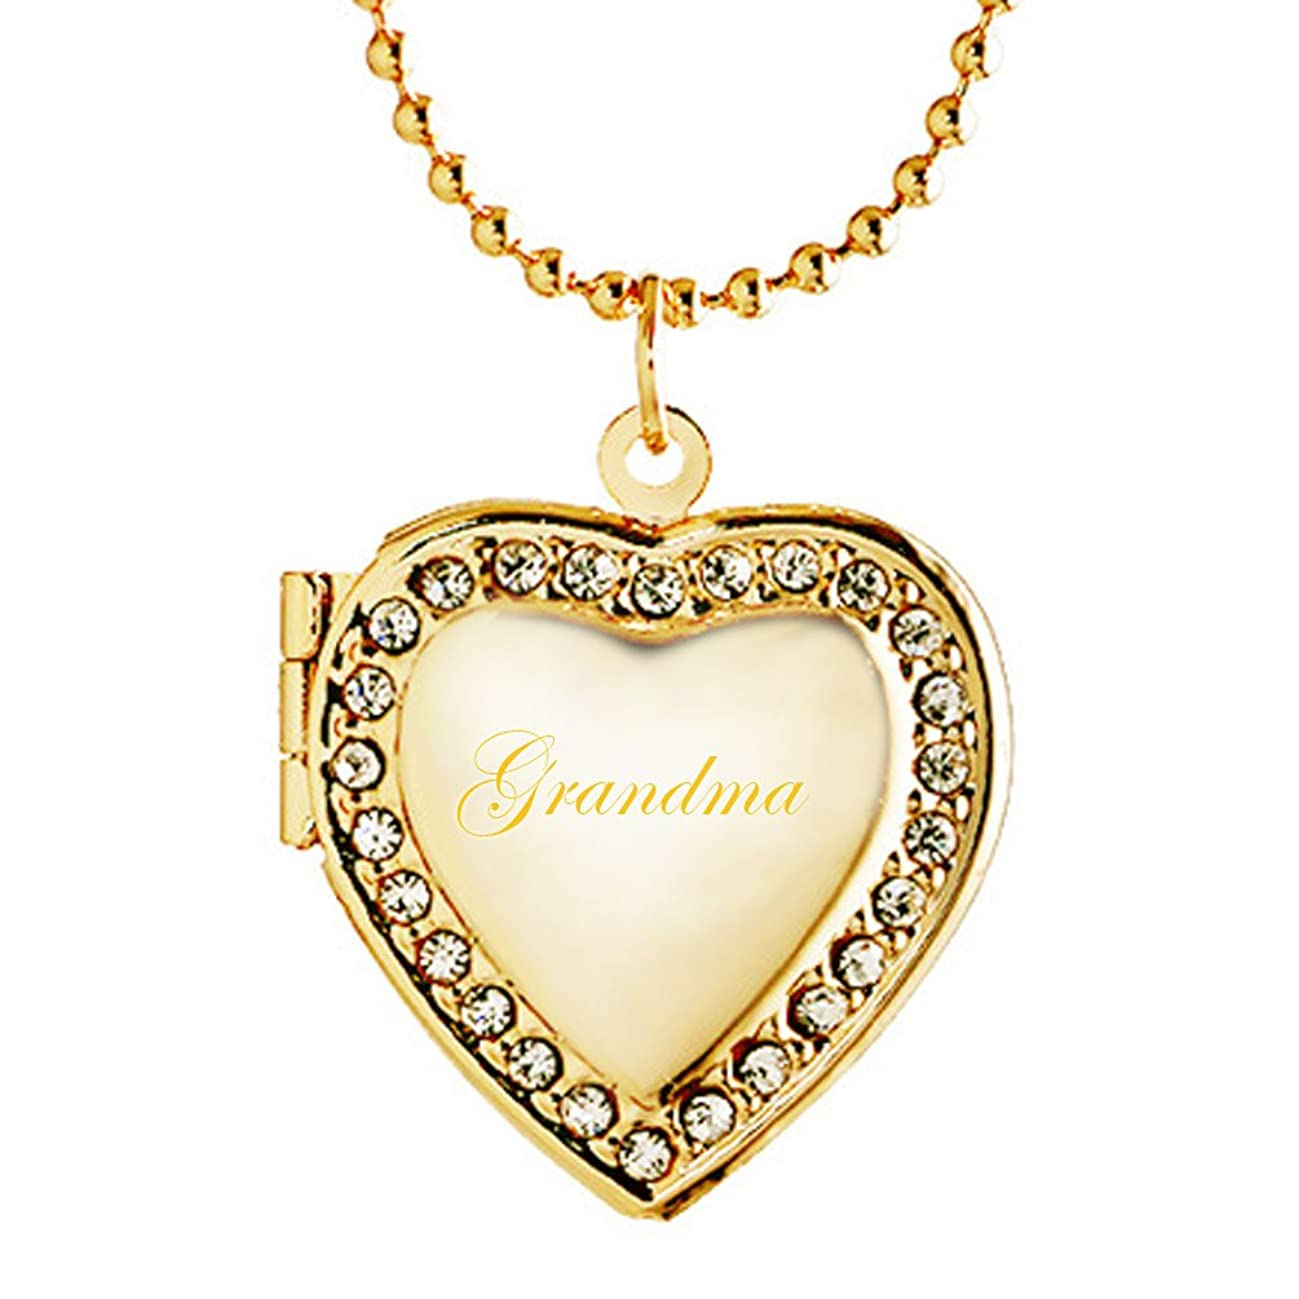 Latigerf Grandma Heart Locket Necklace Engraved Pendant Hold Pictures Photo Women